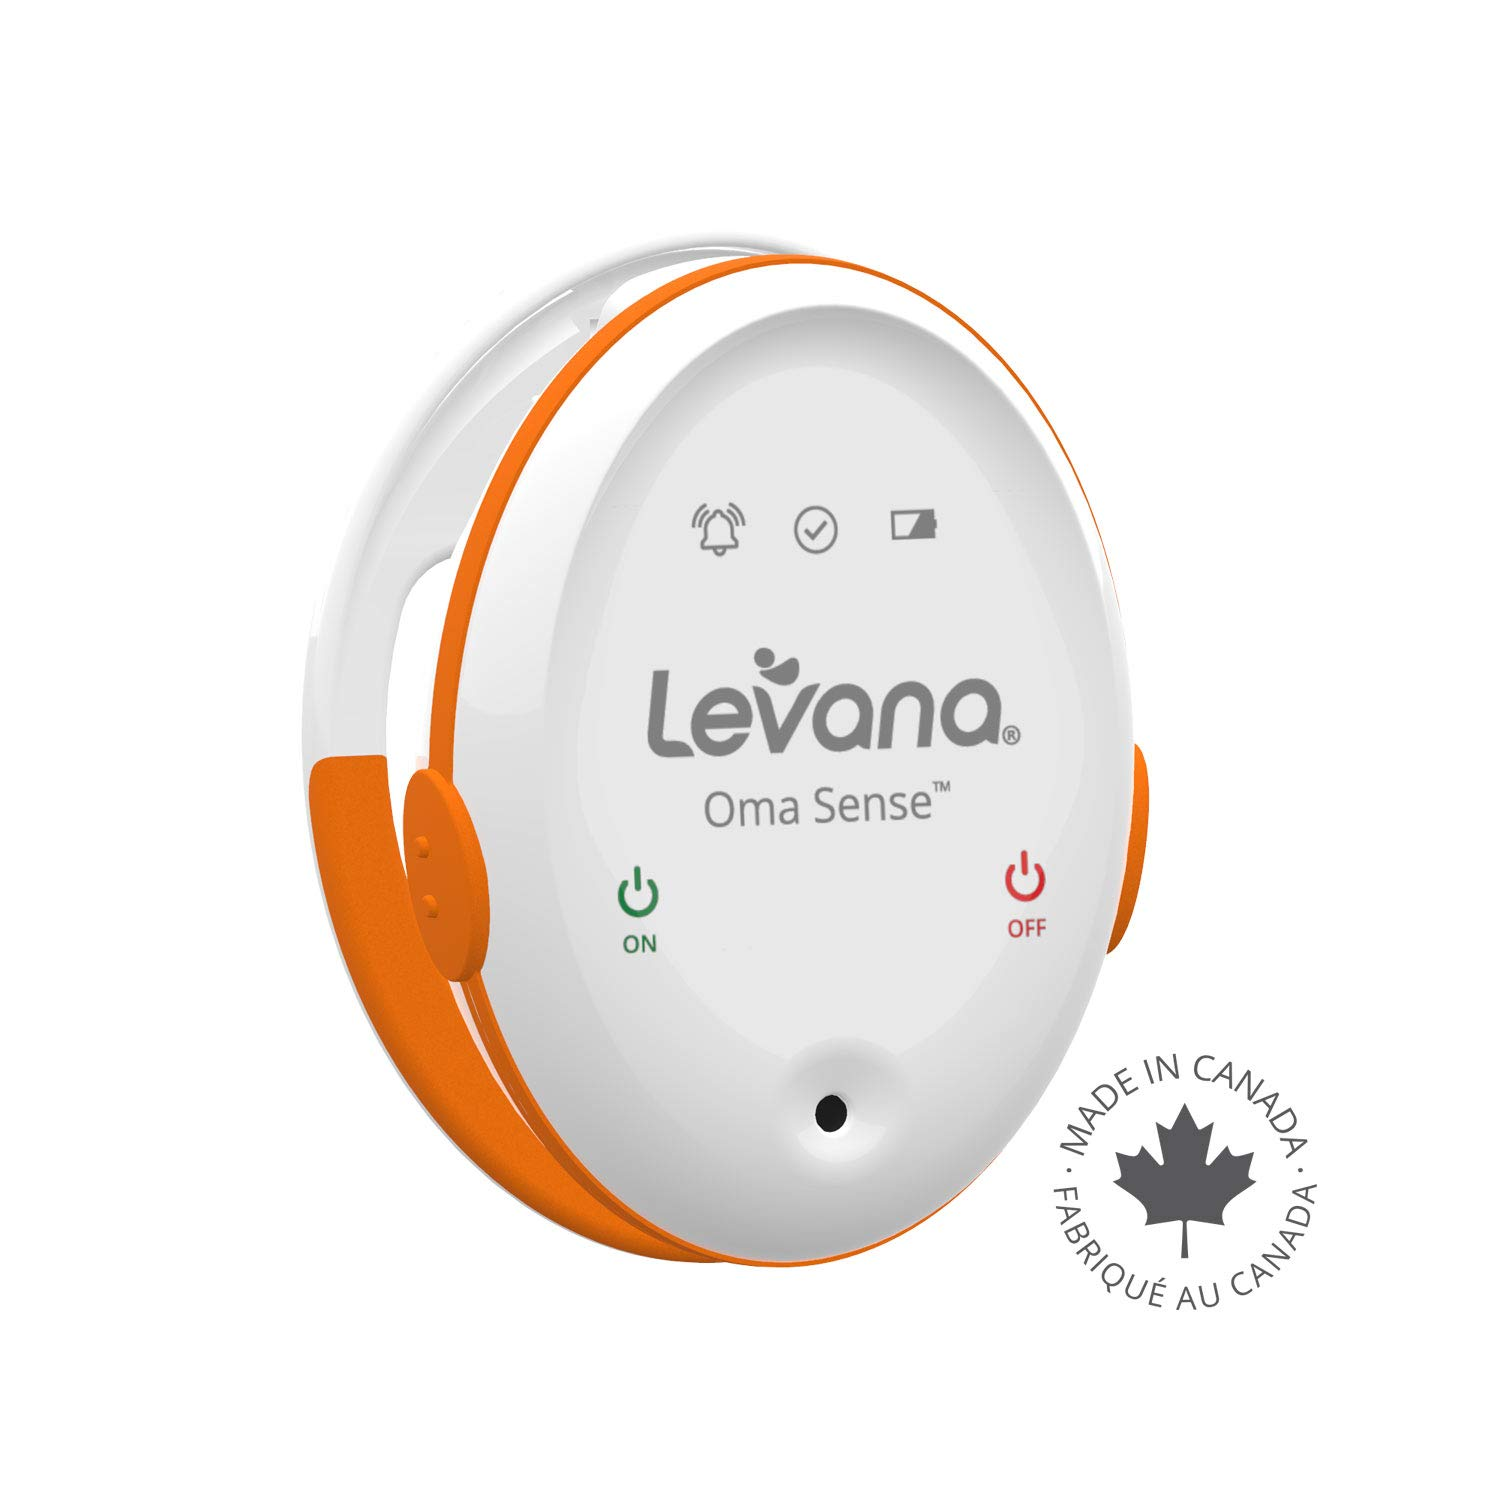 Levana Oma Sense Portable Baby Breathing Movement Monitor with Vibrations and Audible Alerts Designed to Stimulate Baby and Alert Parents by Levana (Image #8)